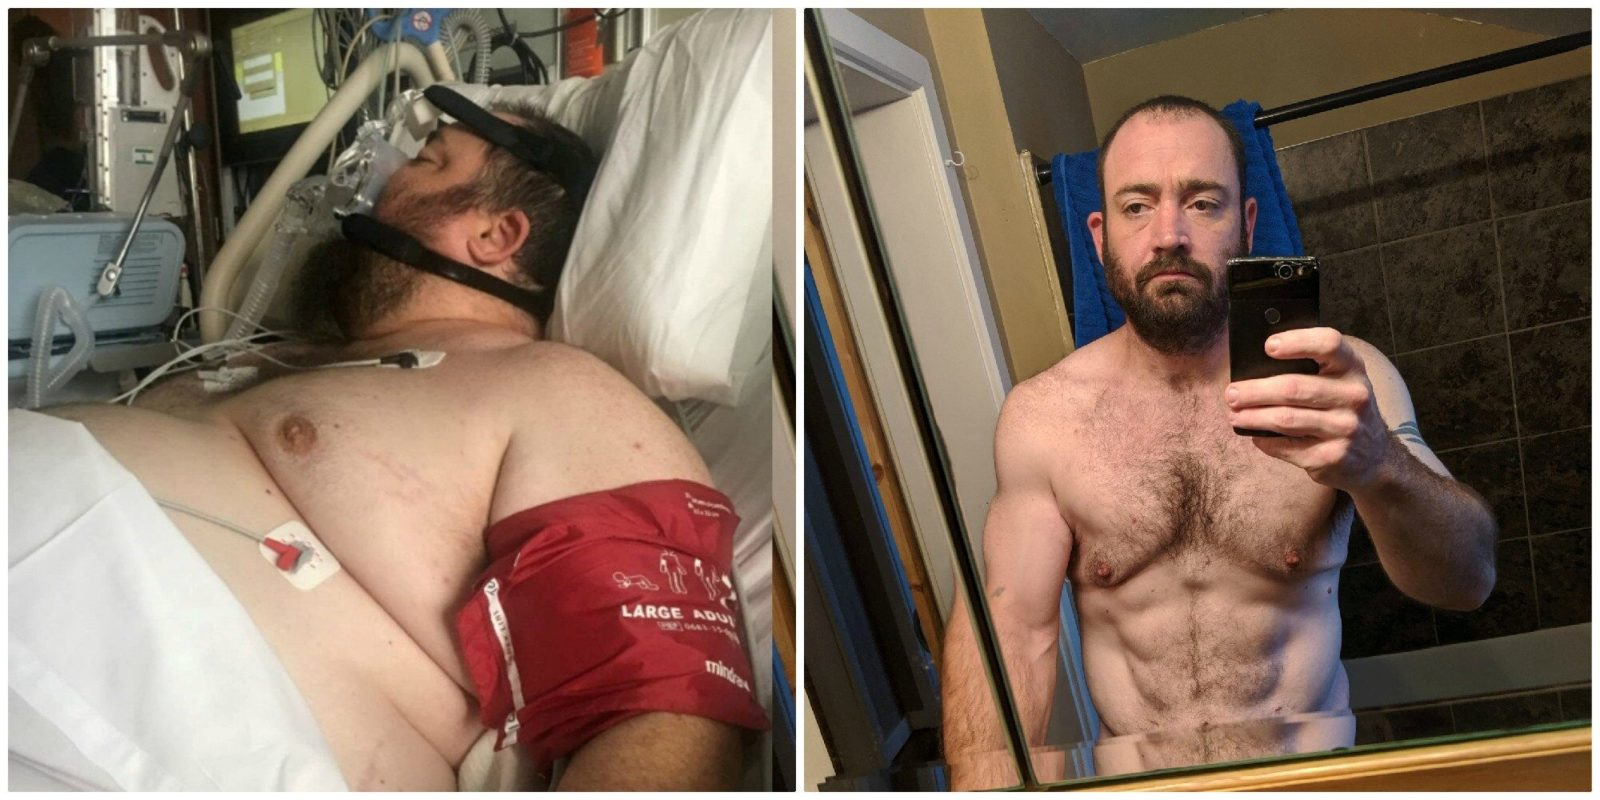 Fox News Today: Iowa man sheds half his body weight after invasive spinal surgery, says he once ate 'with no constraint'